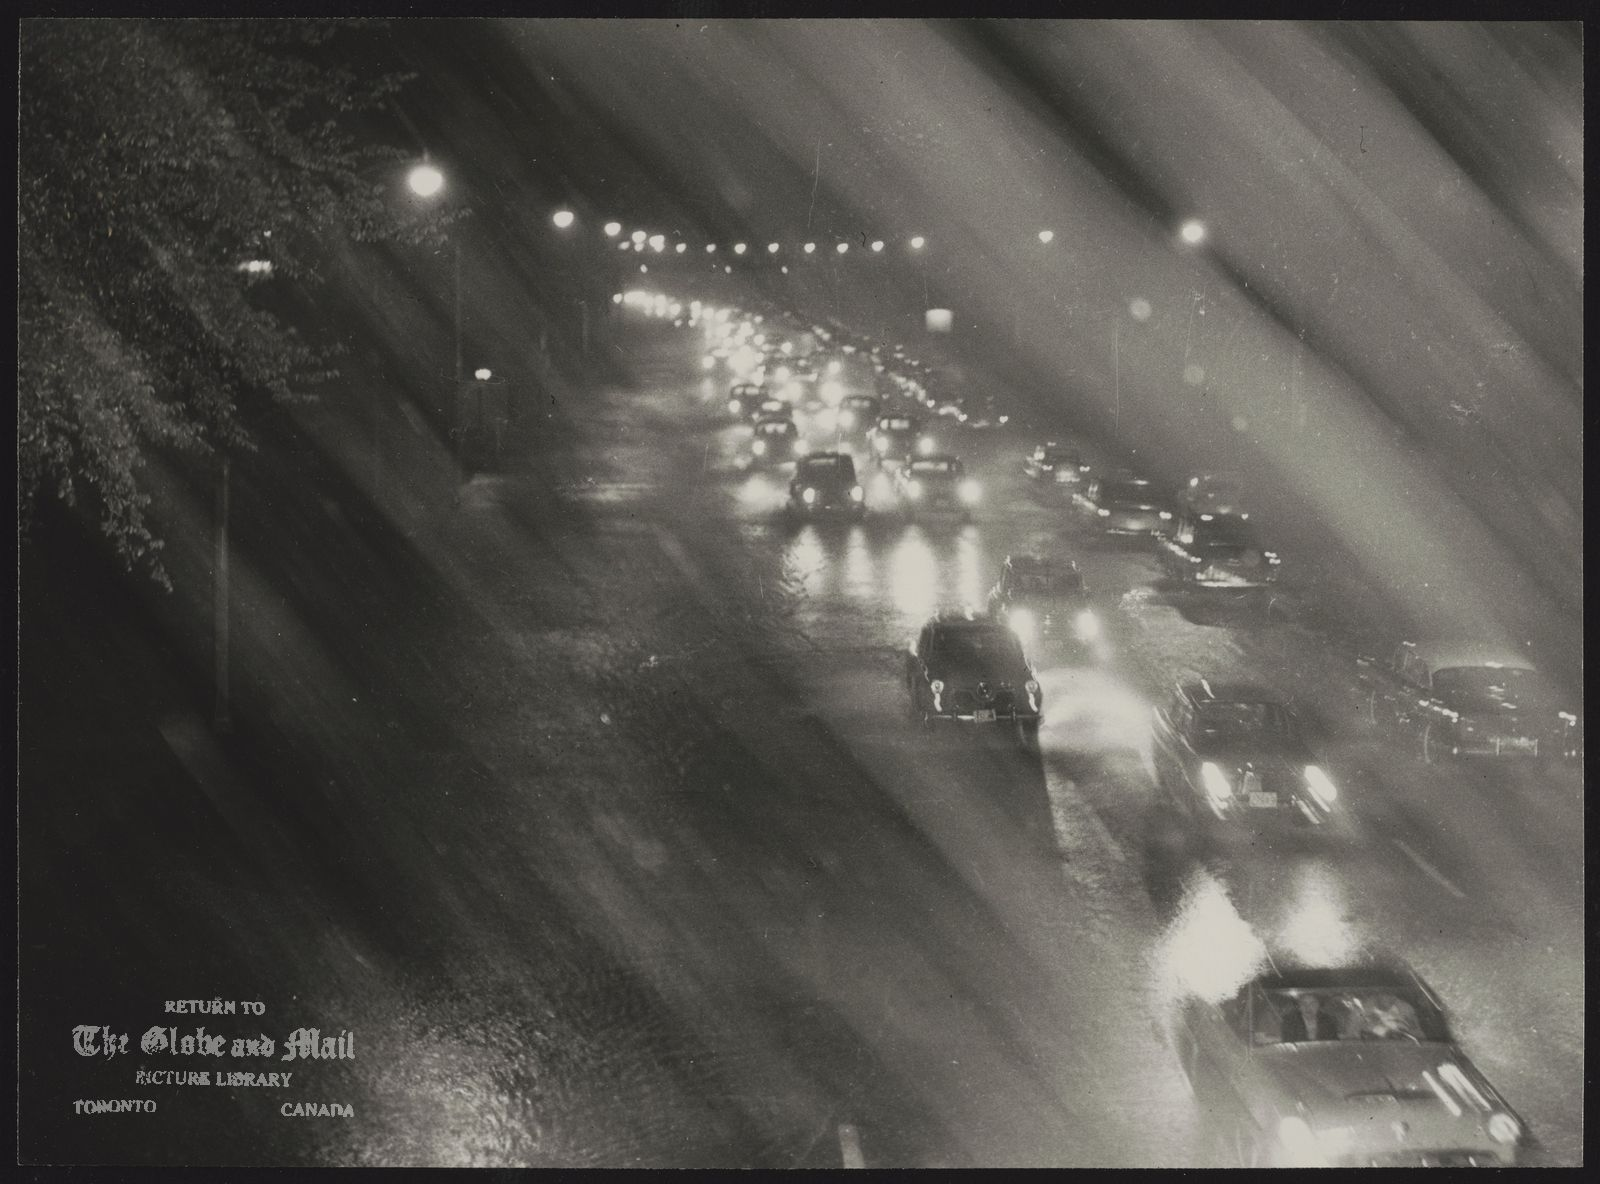 The notes transcribed from the back of this photograph are as follows: Homeward bound motorists on Lake Shore Rd. south of CNE during height of downpour, Oct. 15, 1954. [HURRICANE HAZEL HITS TORONTO -- Homeward bound motorists are packed in solid, sodden lines on Lake Shore Road, south of the CNE grounds, during height of the downpour on October 15, 1954. Steady rain and strong winds tied up traffic in nearly every section of the city. This photo was taken from a Bailey Bridge spanning the highway. Hurricane Hazel pounded the city of Toronto with 110 km/hr winds and more than 200 millimetres of rain in less than 24 hours. Thousands were left homeless, and 81 were killed as severe flooding devastated low-lying areas in and around the city. Areas to the west were especially hard hit and property damage was extensive as bridges and streets were washed out and homes washed away. Photo by Richard Cole / For The Globe and Mail (Neg. #54288-2)]